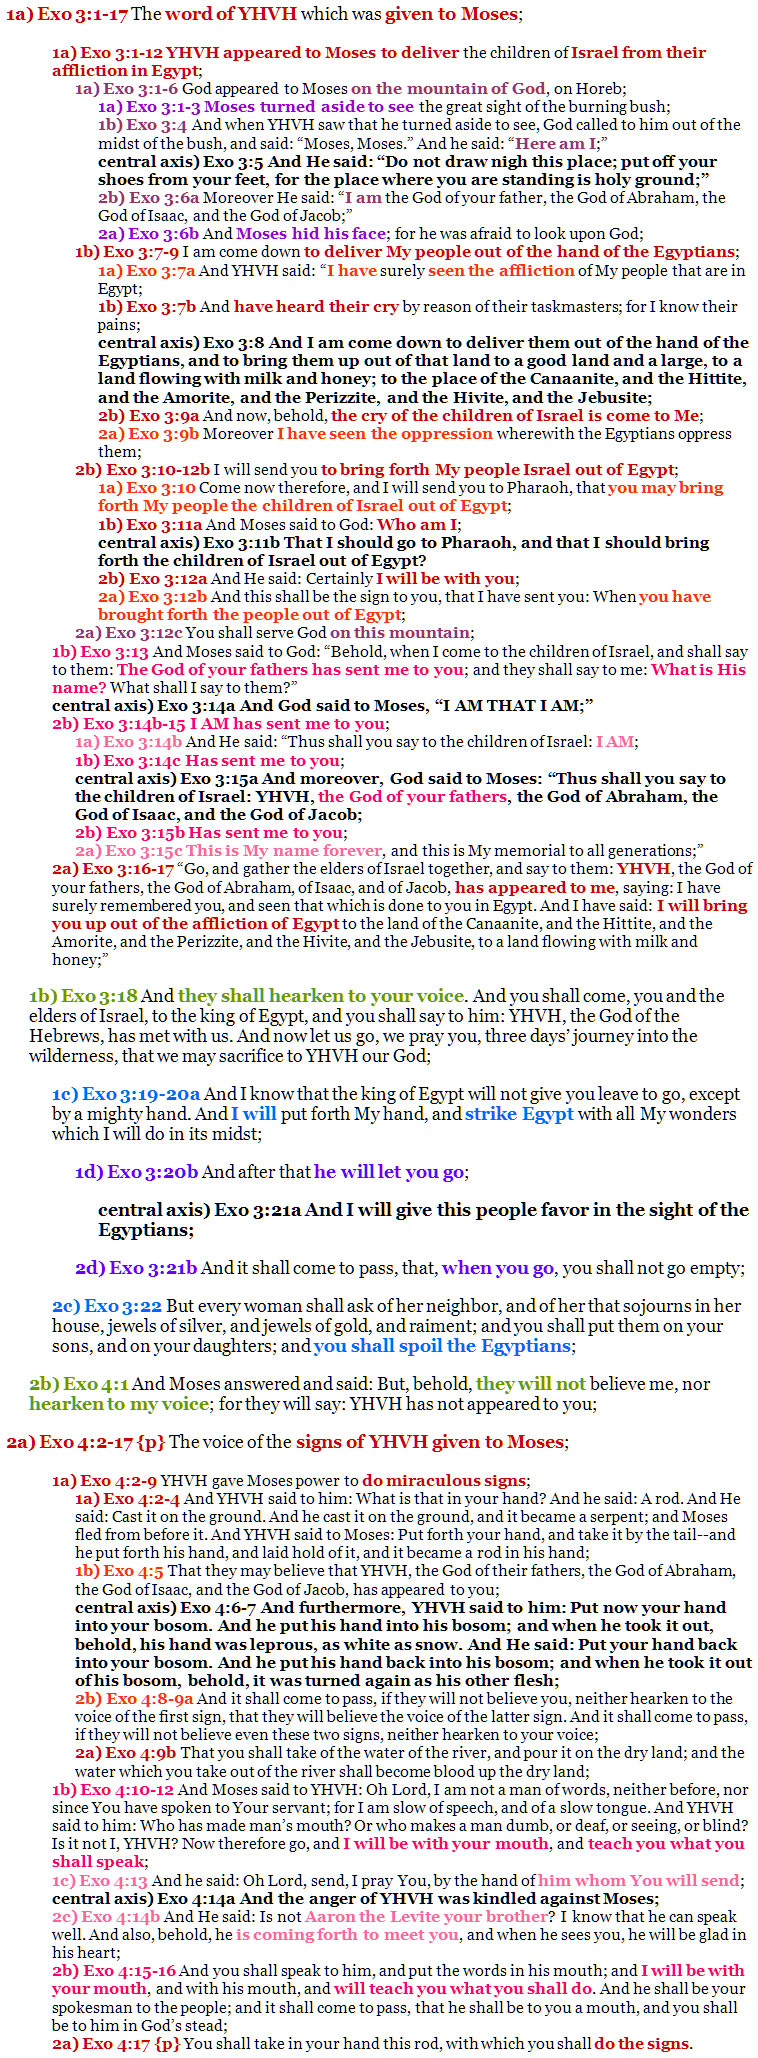 Exo 3:1-4:17 chiasm | christine's bible study at alittleperspective.com